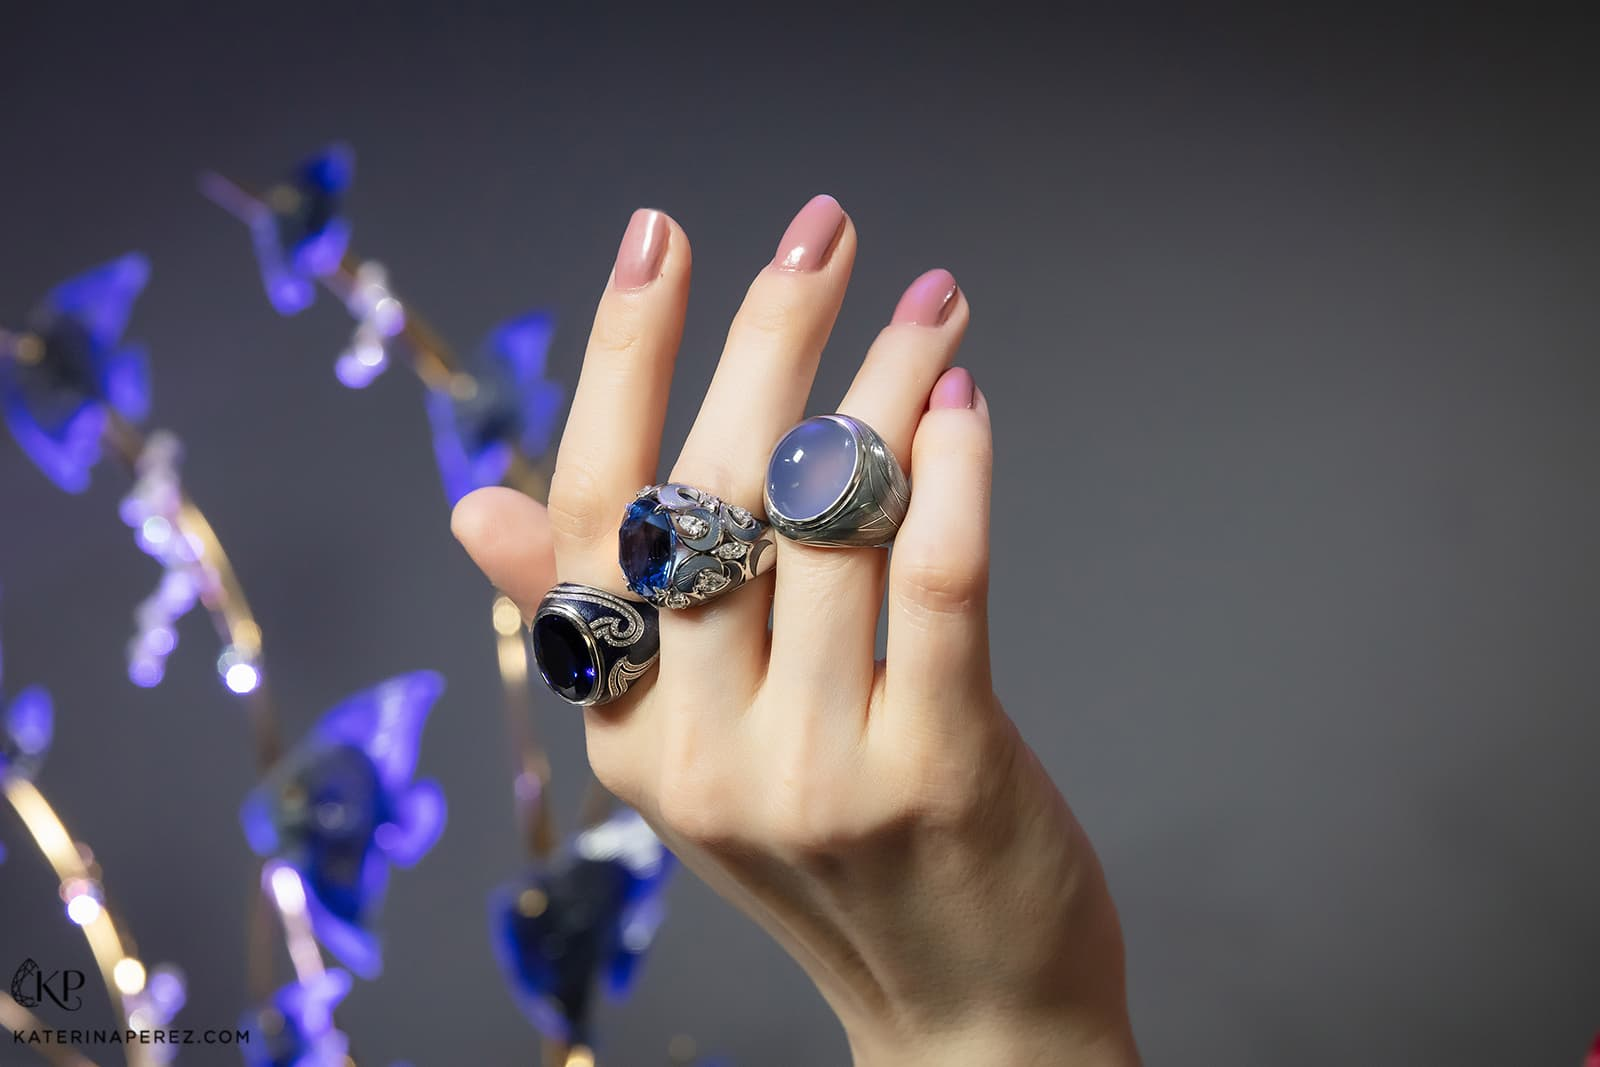 Henn of London cocktail rings with precious gemstones, diamonds and enamel in 18k white gold